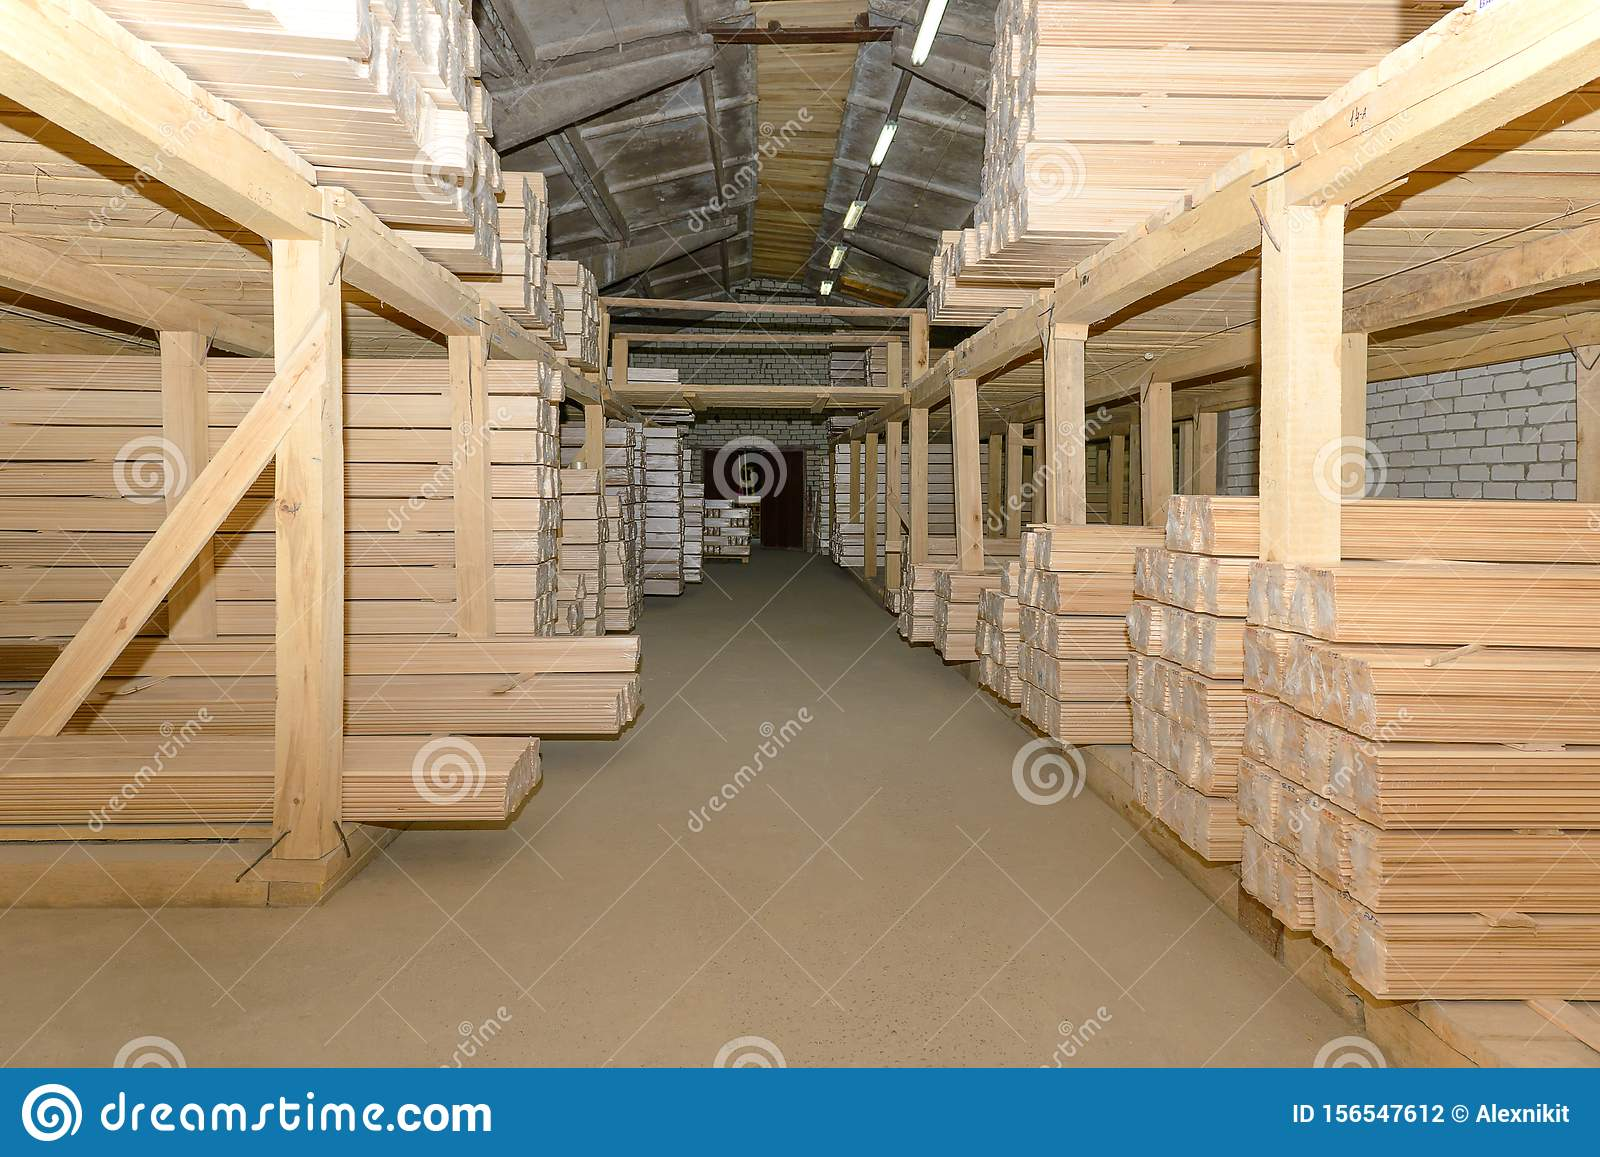 Lumber warehouse with shelves